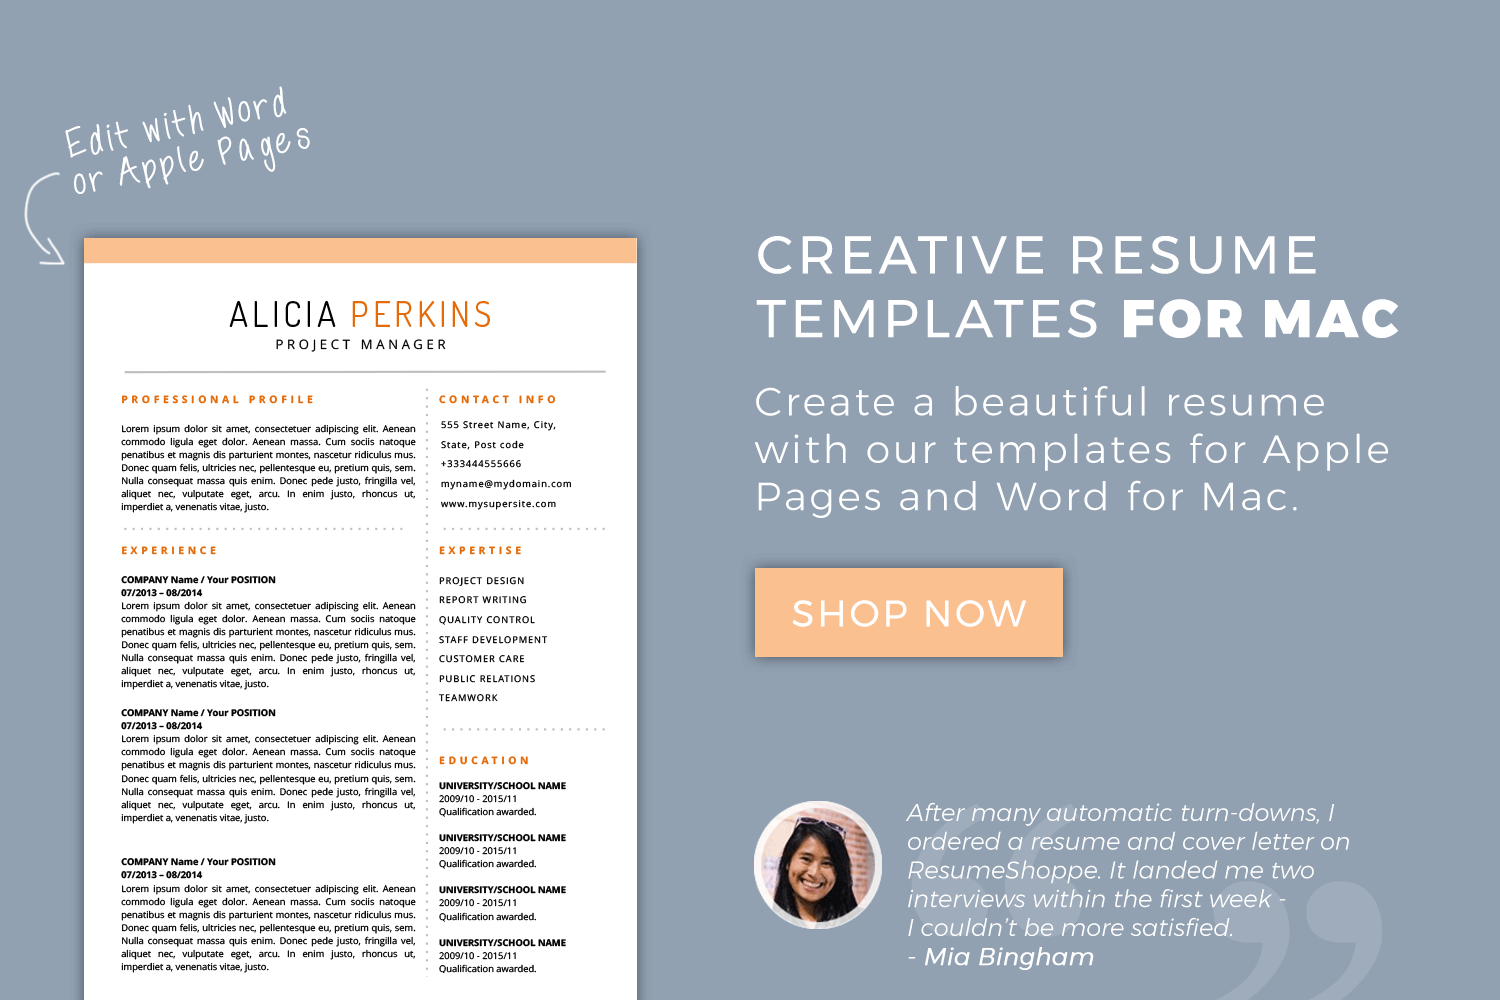 resume templates for pages mac resume templates for mac word amp apple pages instant 24452 | creative resume templates for mac 1